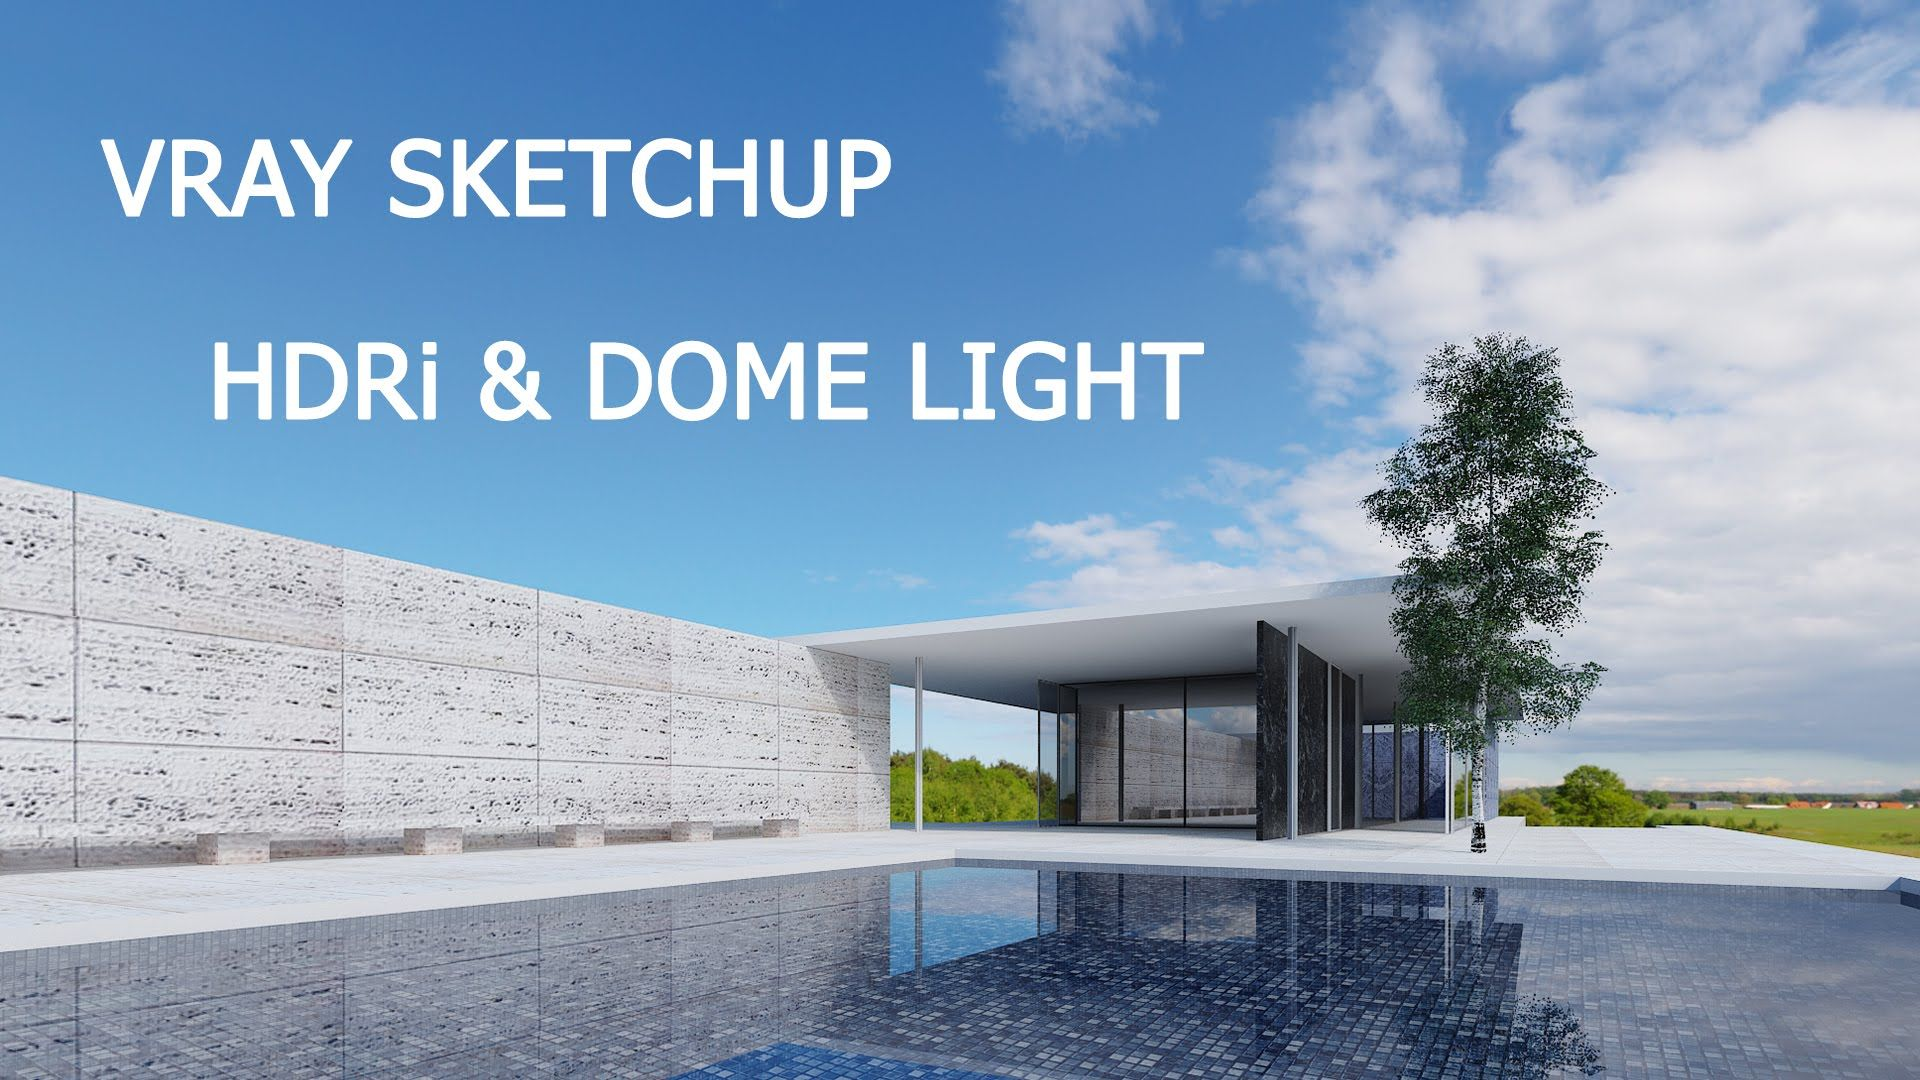 Vray Sketchup How To Use Dome Light Hdri Vray Sketchup Pinterest Architecture